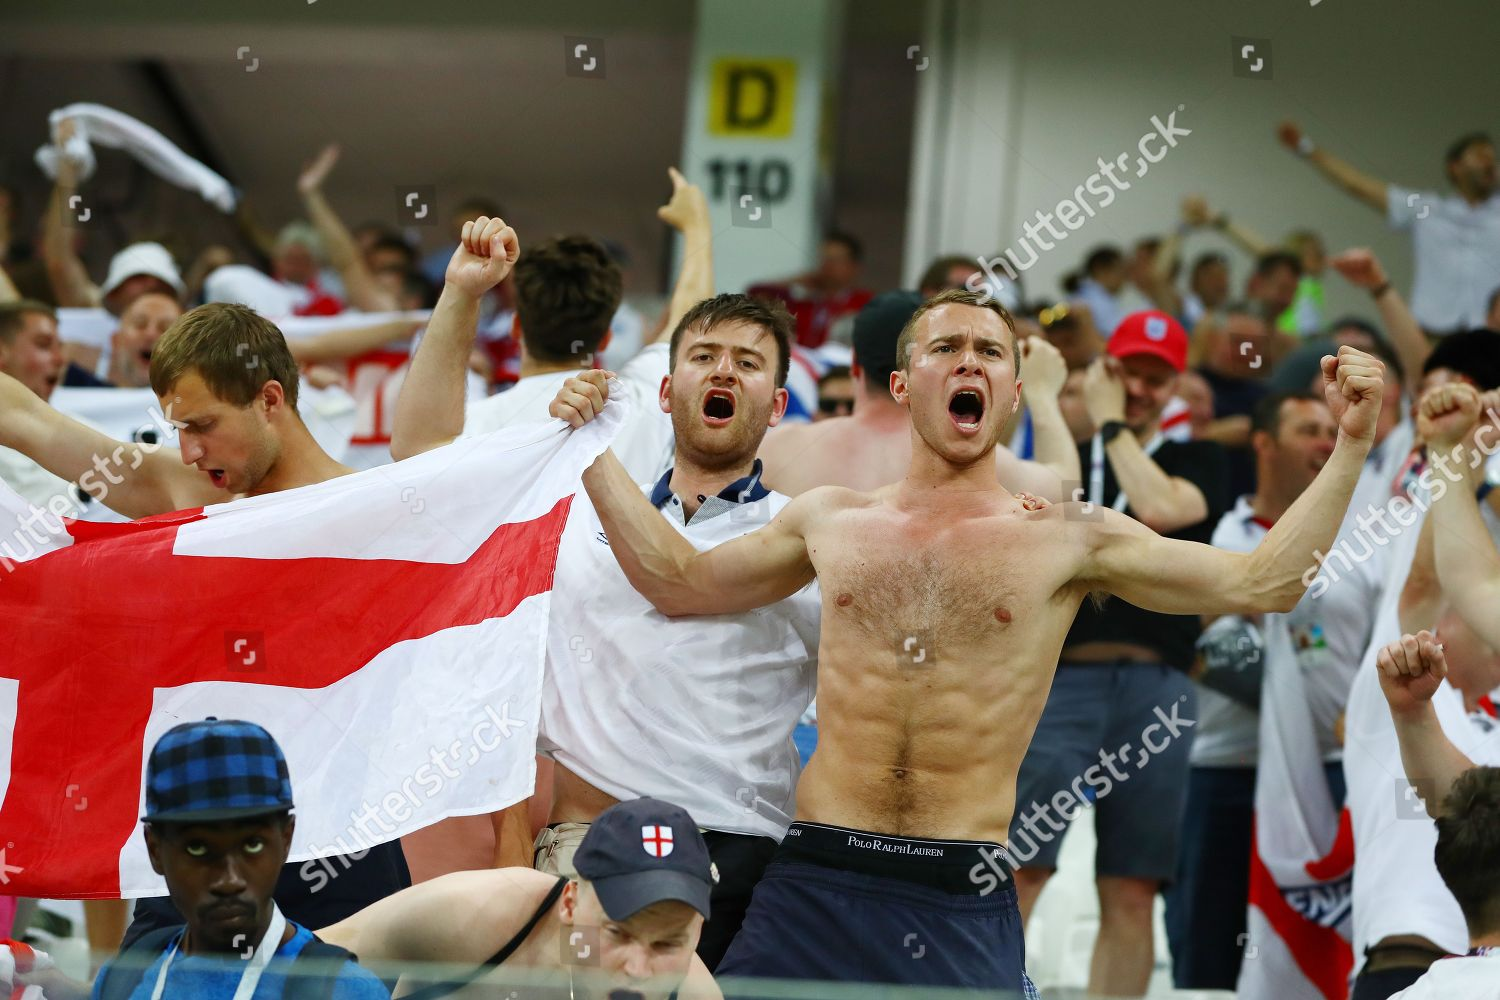 4e5953cbb55 Tunisia v England, Group G, 2018 FIFA World Cup football match, Volgograd  Stadium, Russia Stock Image by Kieran Mcmanus for editorial use, Jun 18,  2018